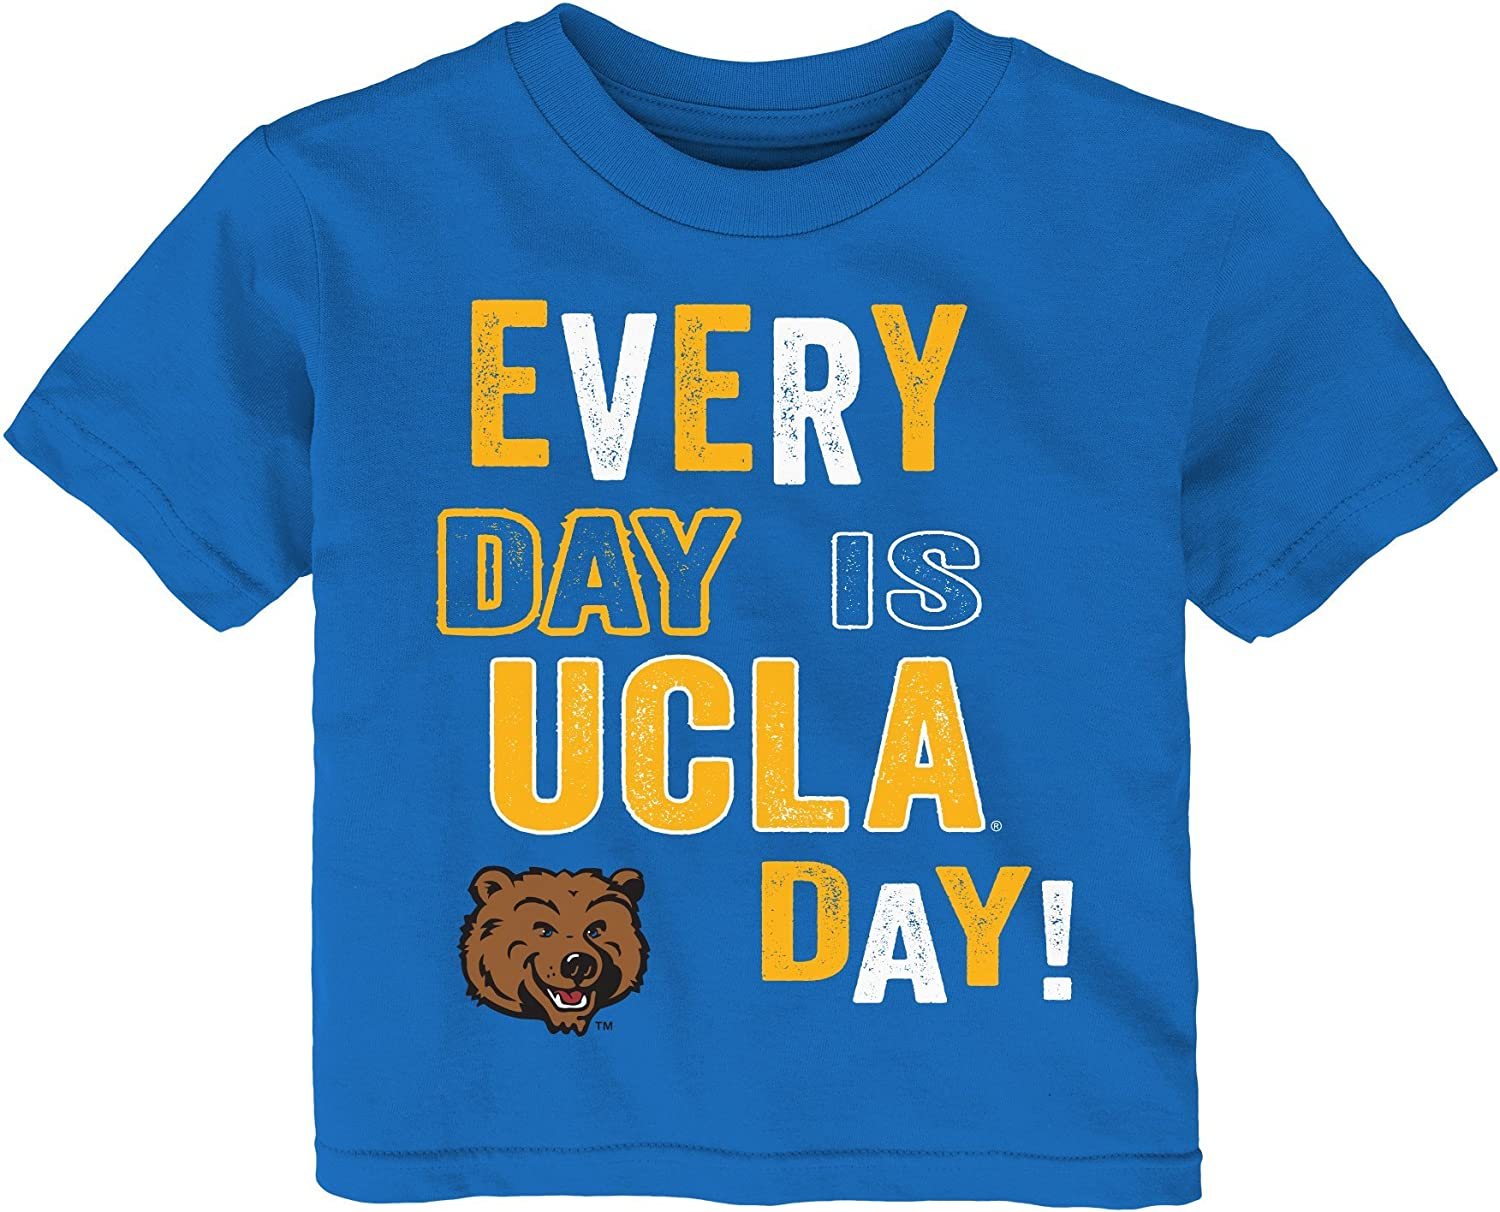 18 Months Outerstuff NCAA Bruins Infant Primary Logo Short Sleeve Tee Strong Blue